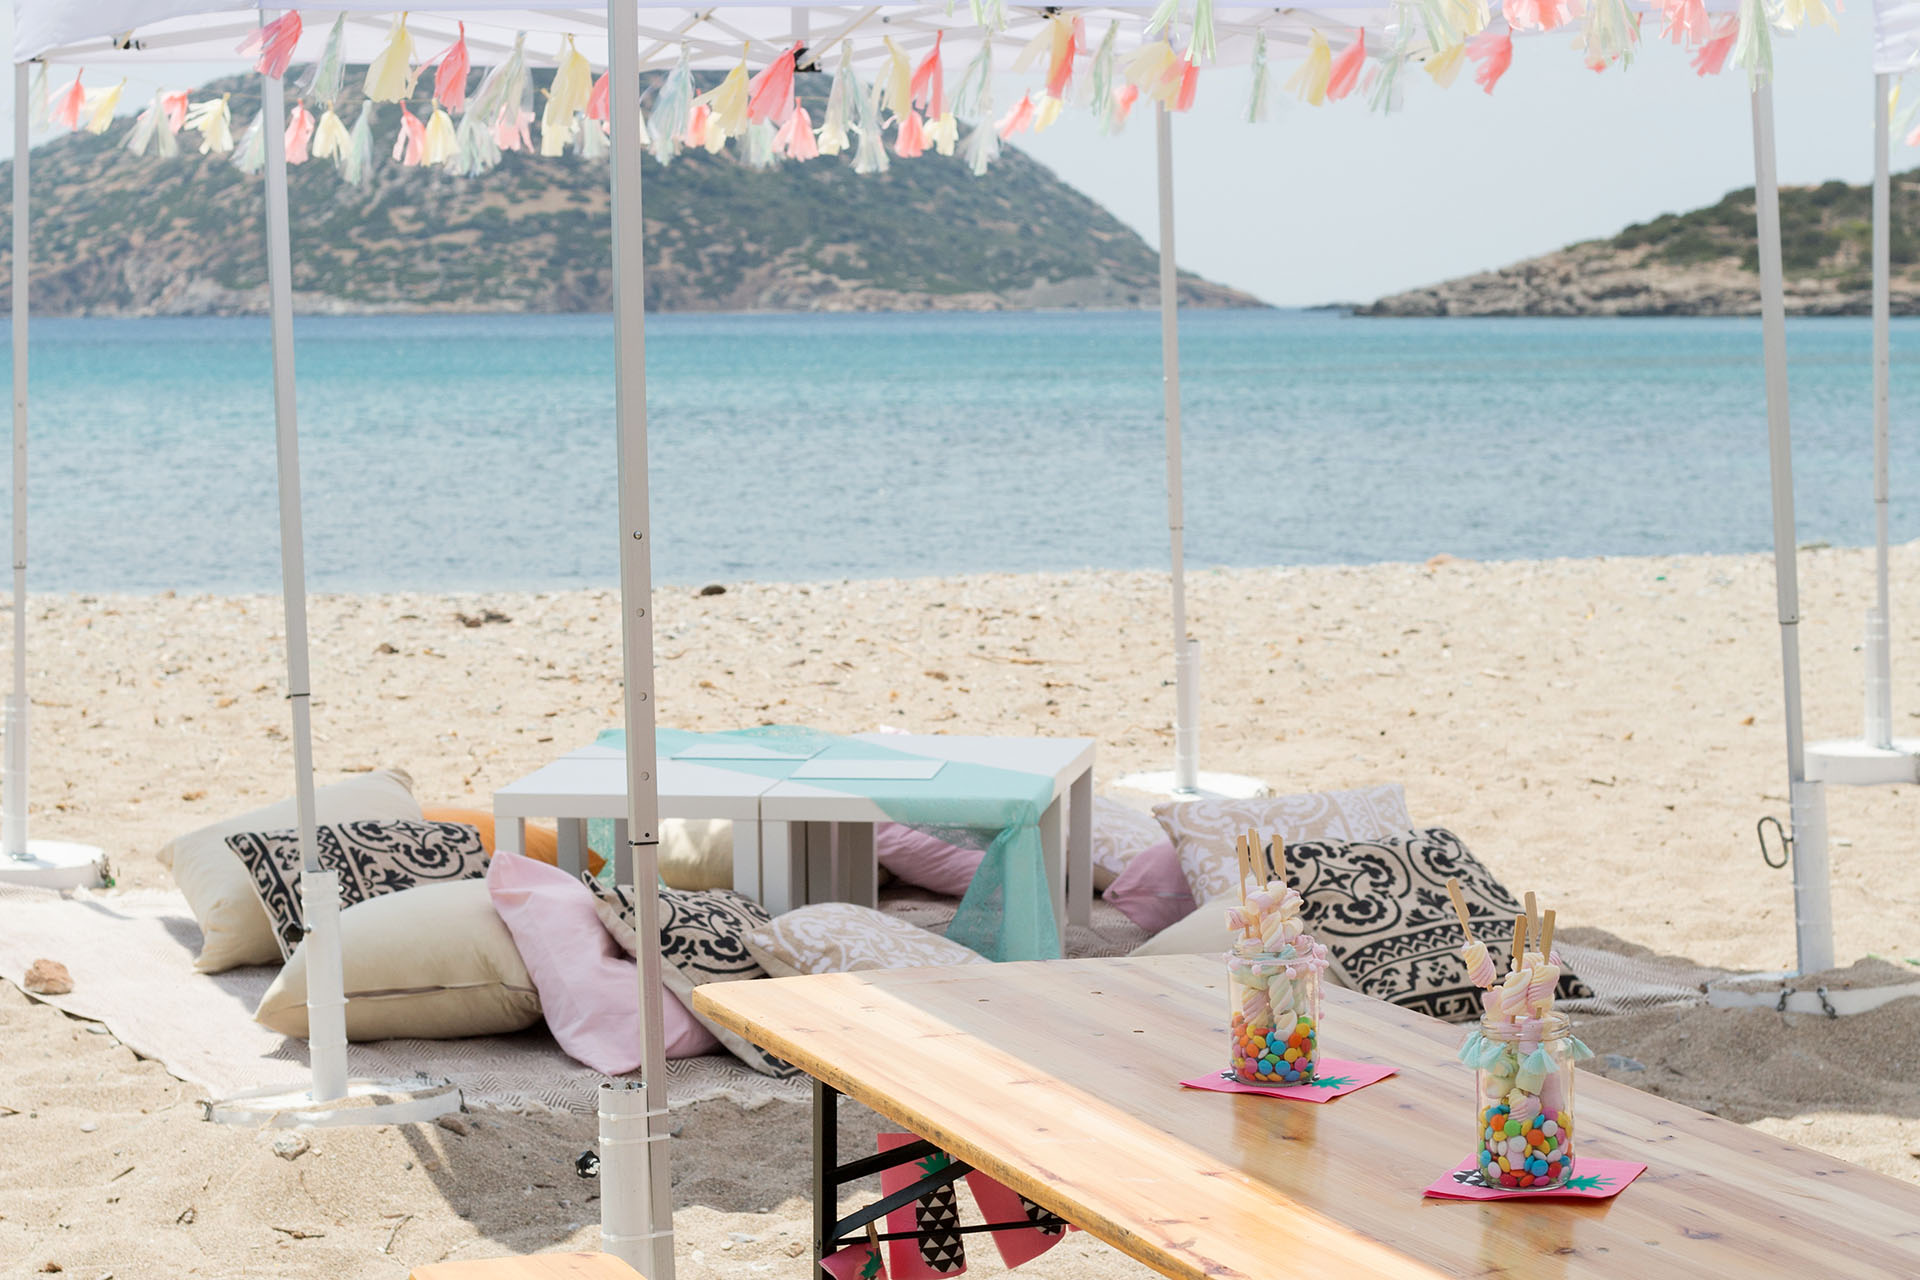 A Festival-inspired Christening Party on the Beach